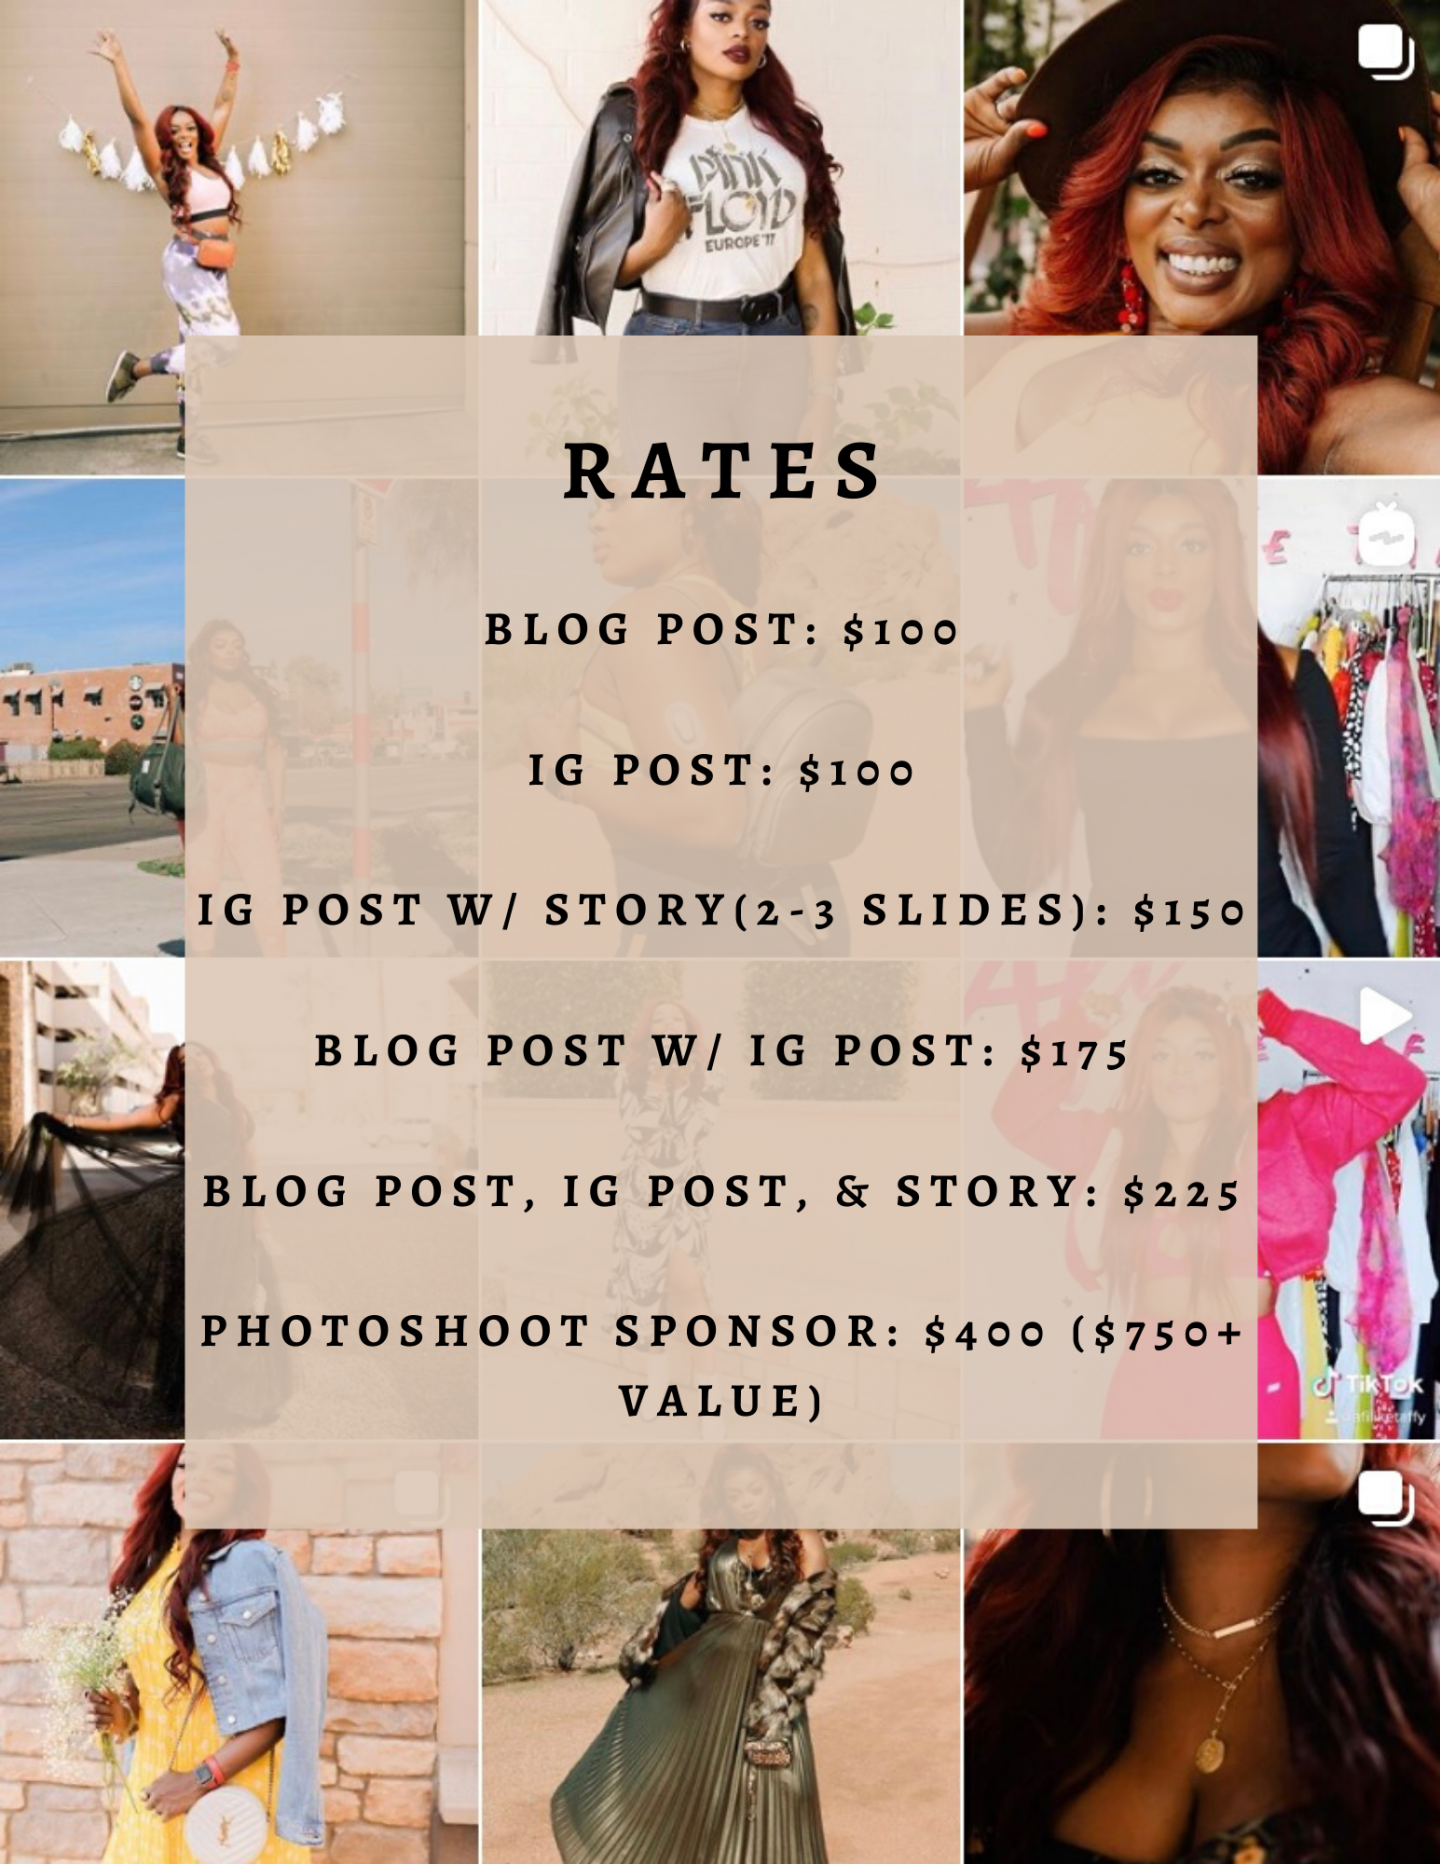 Afi's Rates  Blog Post: $100 IG Post: $100 IG Post w/ story (2-3 slides): $150 Blog Post w/ IG Post: $175 Blog Post, IG Post, & Story: $225 Photoshoot sponsor: $400 ($750+ value)